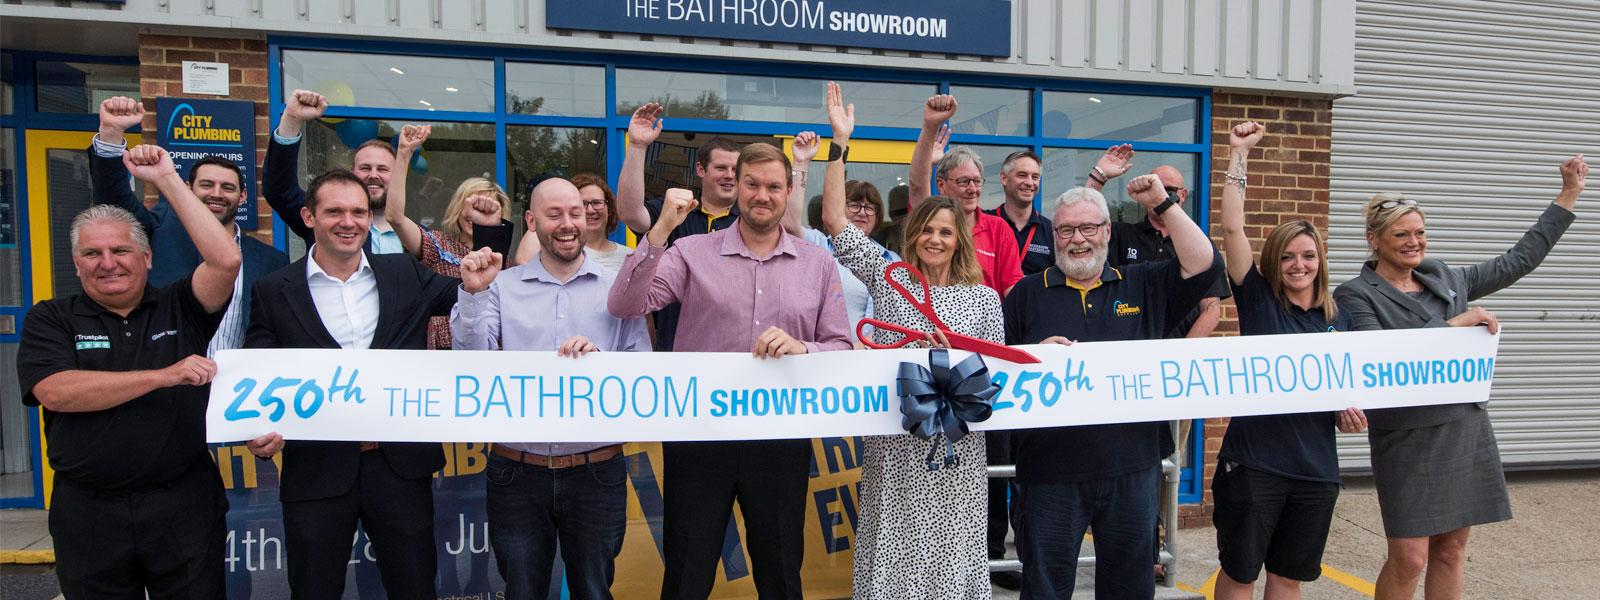 Linda Barker Opening 250th 'The Bathroom Showroom'